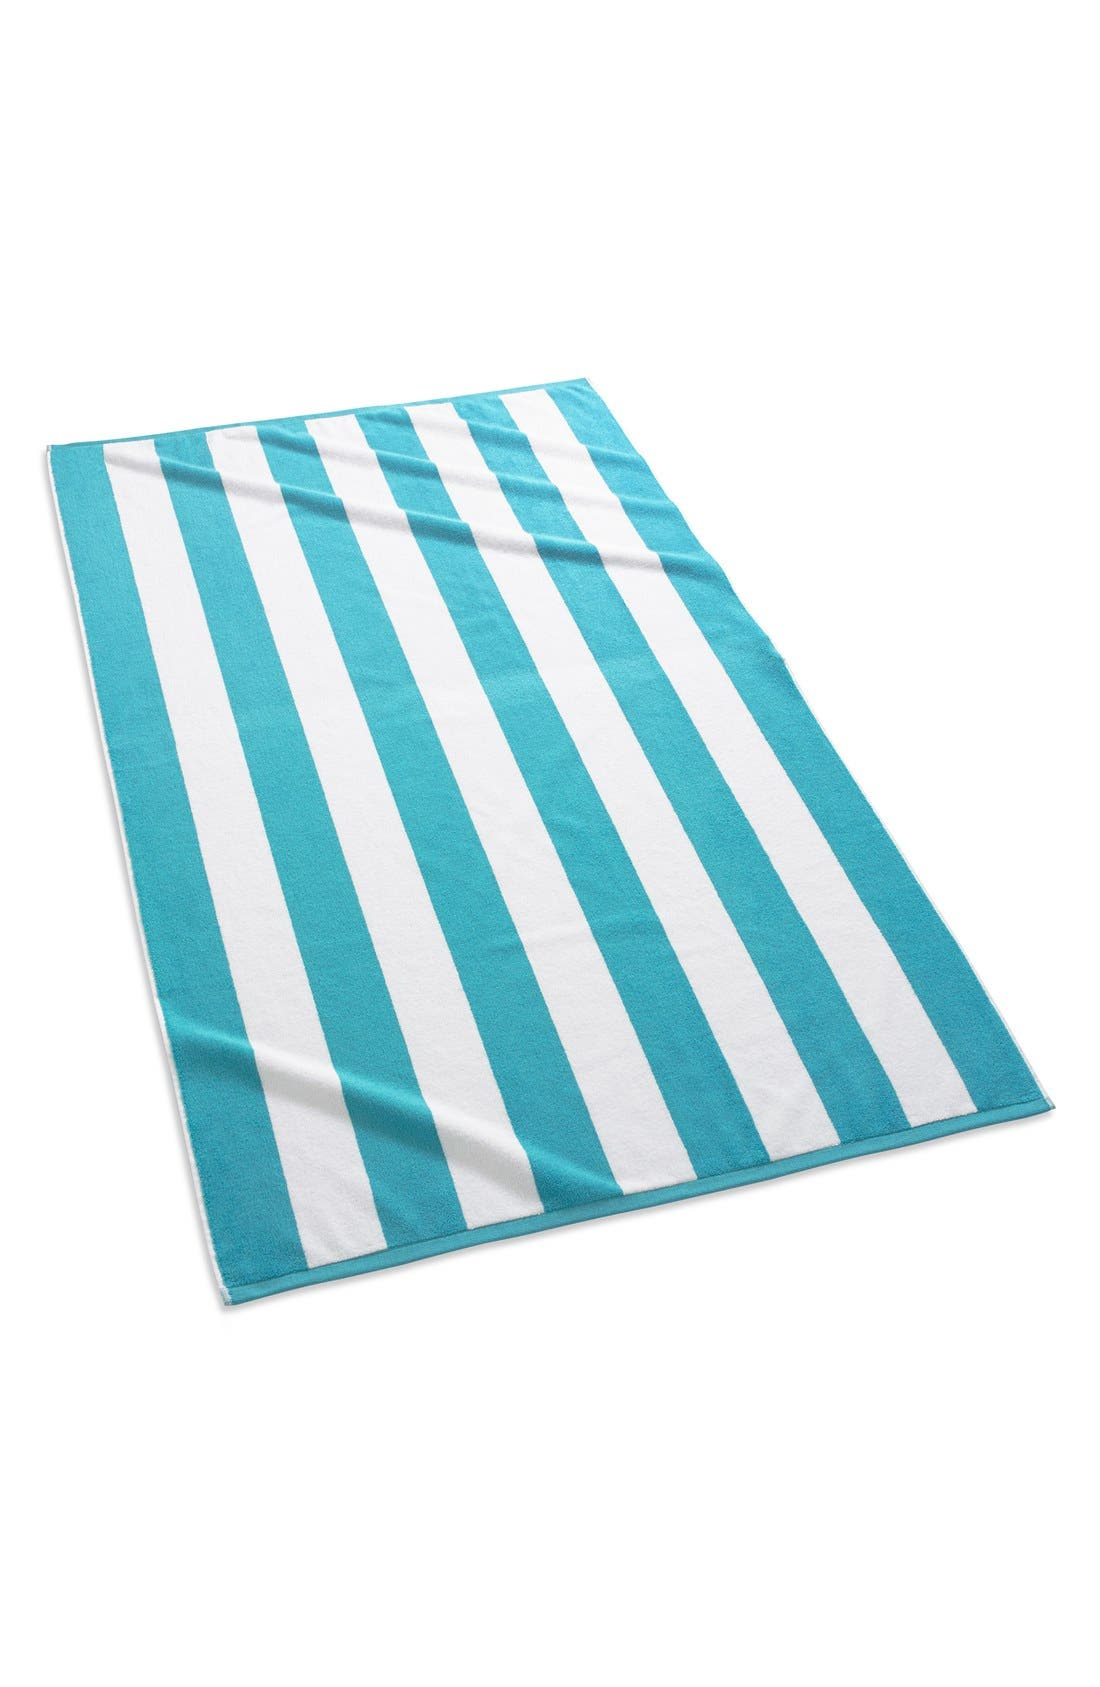 KASSATEX 'Cabana' Stripe Beach Towel